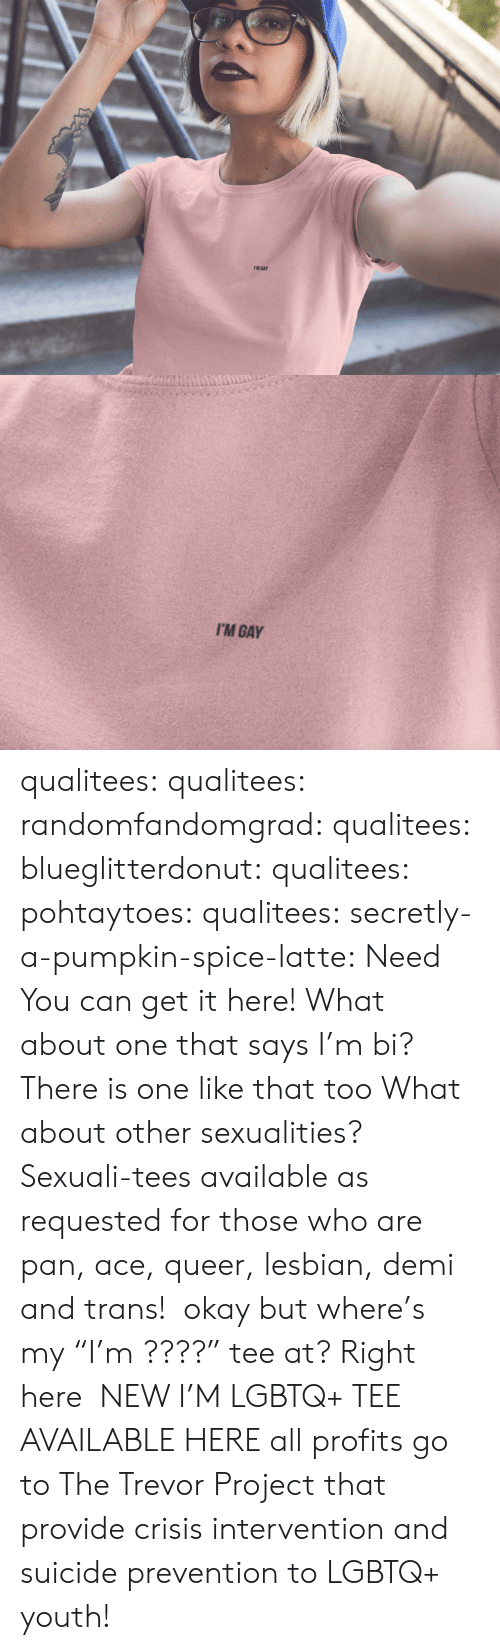 """demi: I'M GAY   I'M GAY qualitees:  qualitees: randomfandomgrad:  qualitees:  blueglitterdonut:  qualitees:   pohtaytoes:  qualitees:   secretly-a-pumpkin-spice-latte: Need You can get it here!   What about one that says I'm bi?  There is one like that too   What about other sexualities?  Sexuali-tees available as requested for those who are pan, ace,queer,lesbian, demi and trans!  okay but where's my""""I'm ????"""" tee at?  Right here  NEW I'M LGBTQ+ TEE AVAILABLE HEREall profits go to The Trevor Project that provide crisis intervention and suicide prevention to LGBTQ+ youth!"""